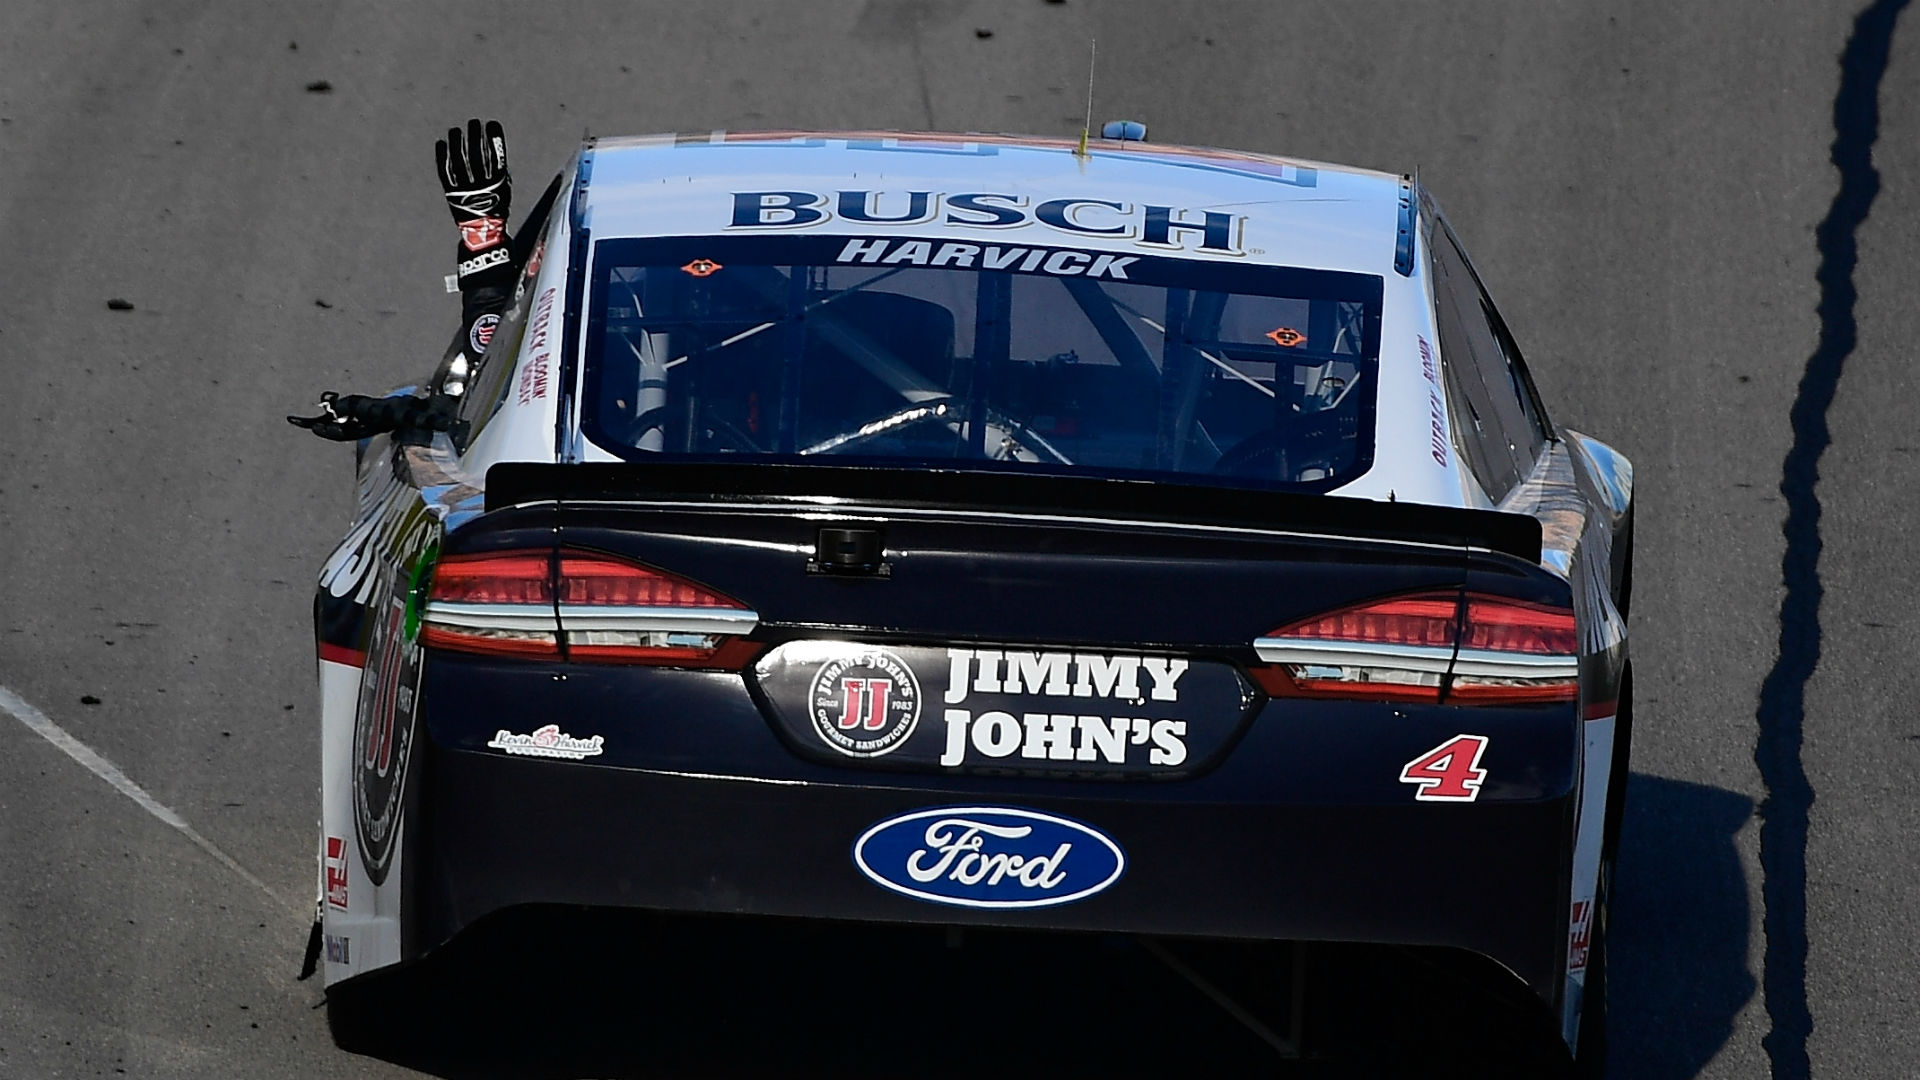 Kevin Harvick hit with severe penalty from NASCAR for rear-window malfunction